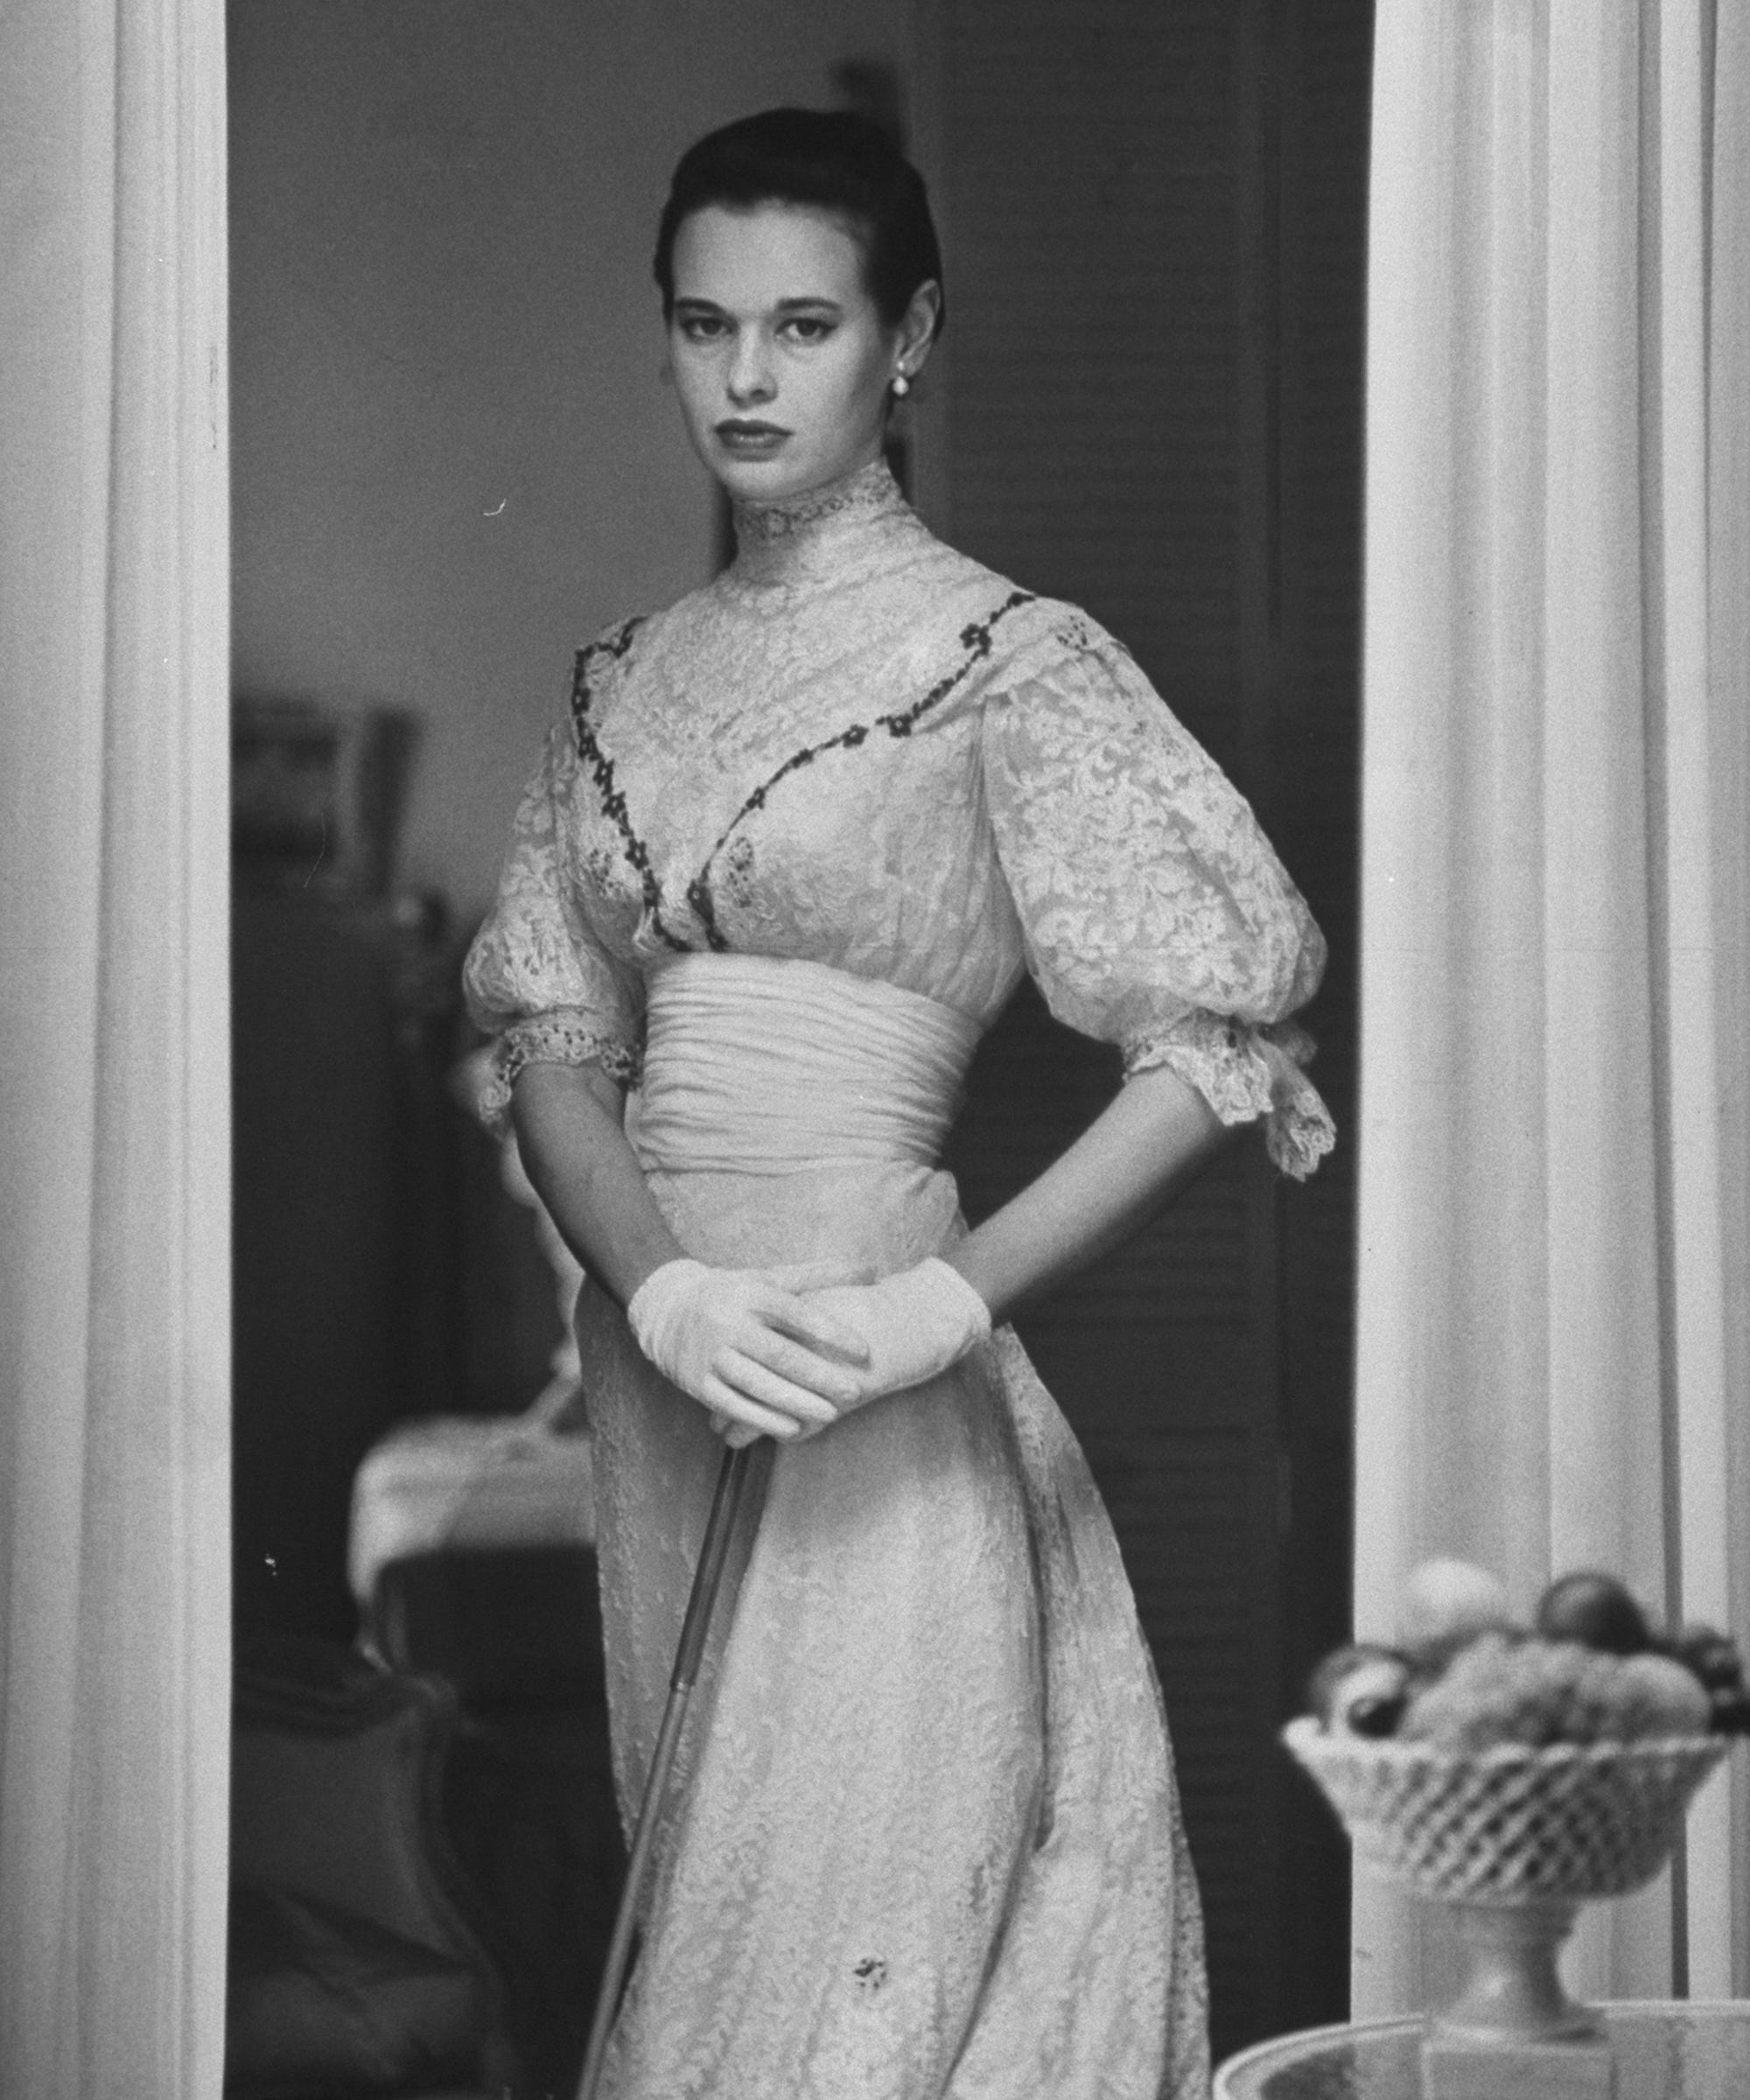 Remembering Gloria Vanderbilt's Legendary Style